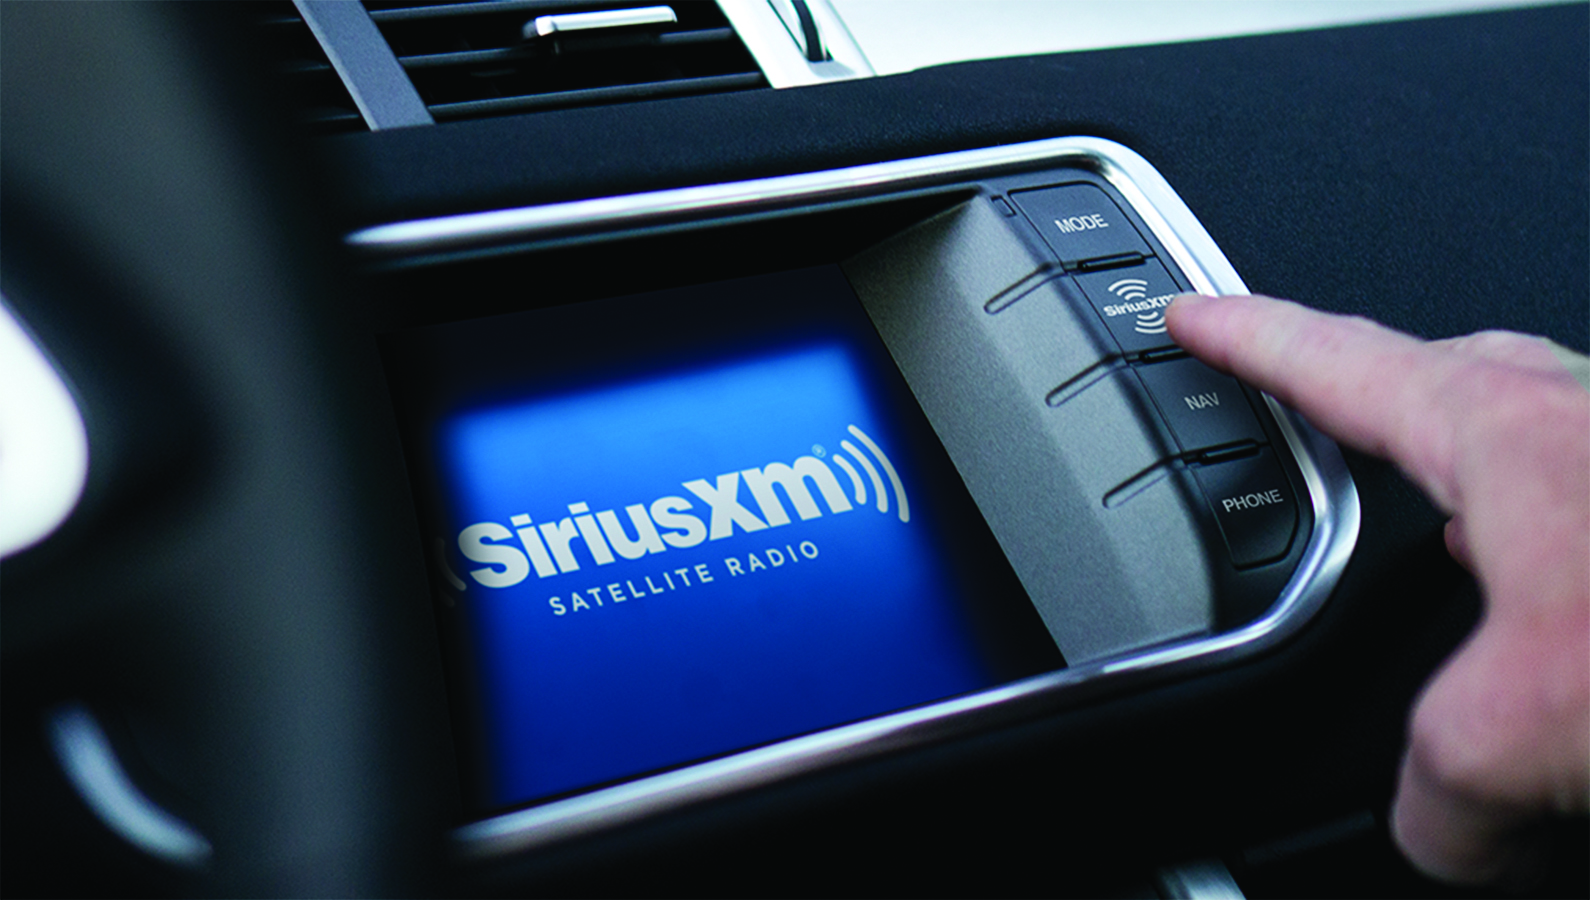 SiriusXM is buying a 19% stake in Pandora for $480 million